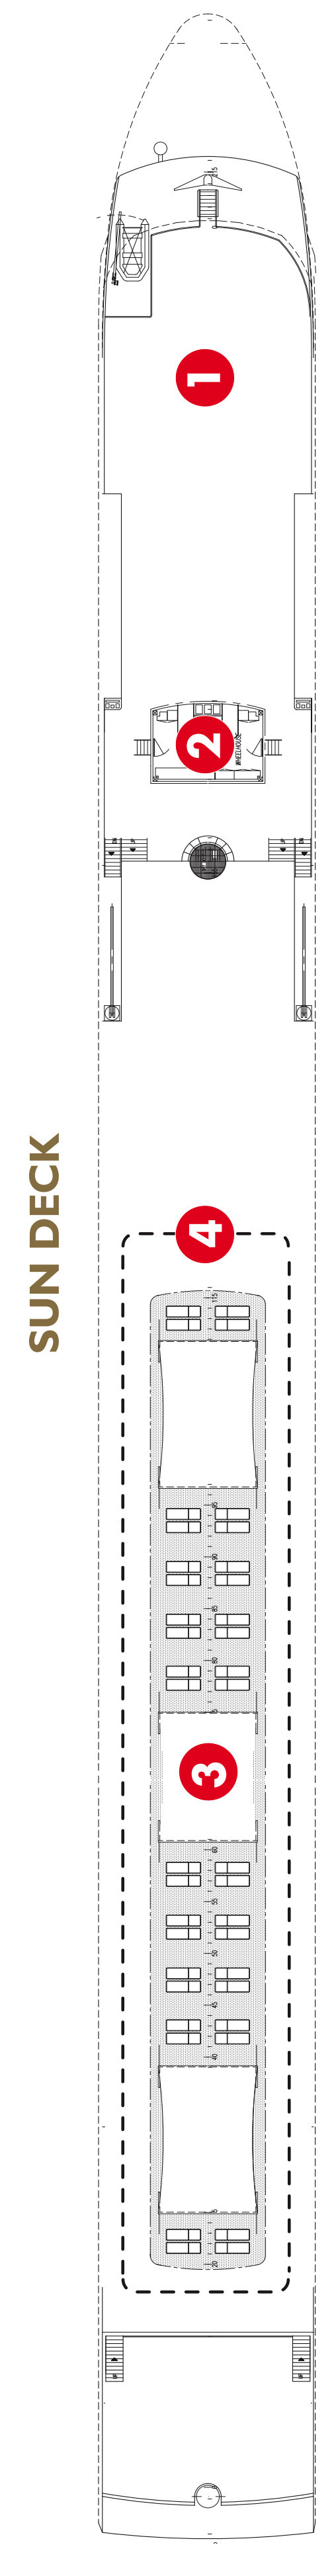 Scenic Crystal Sun Deck layout